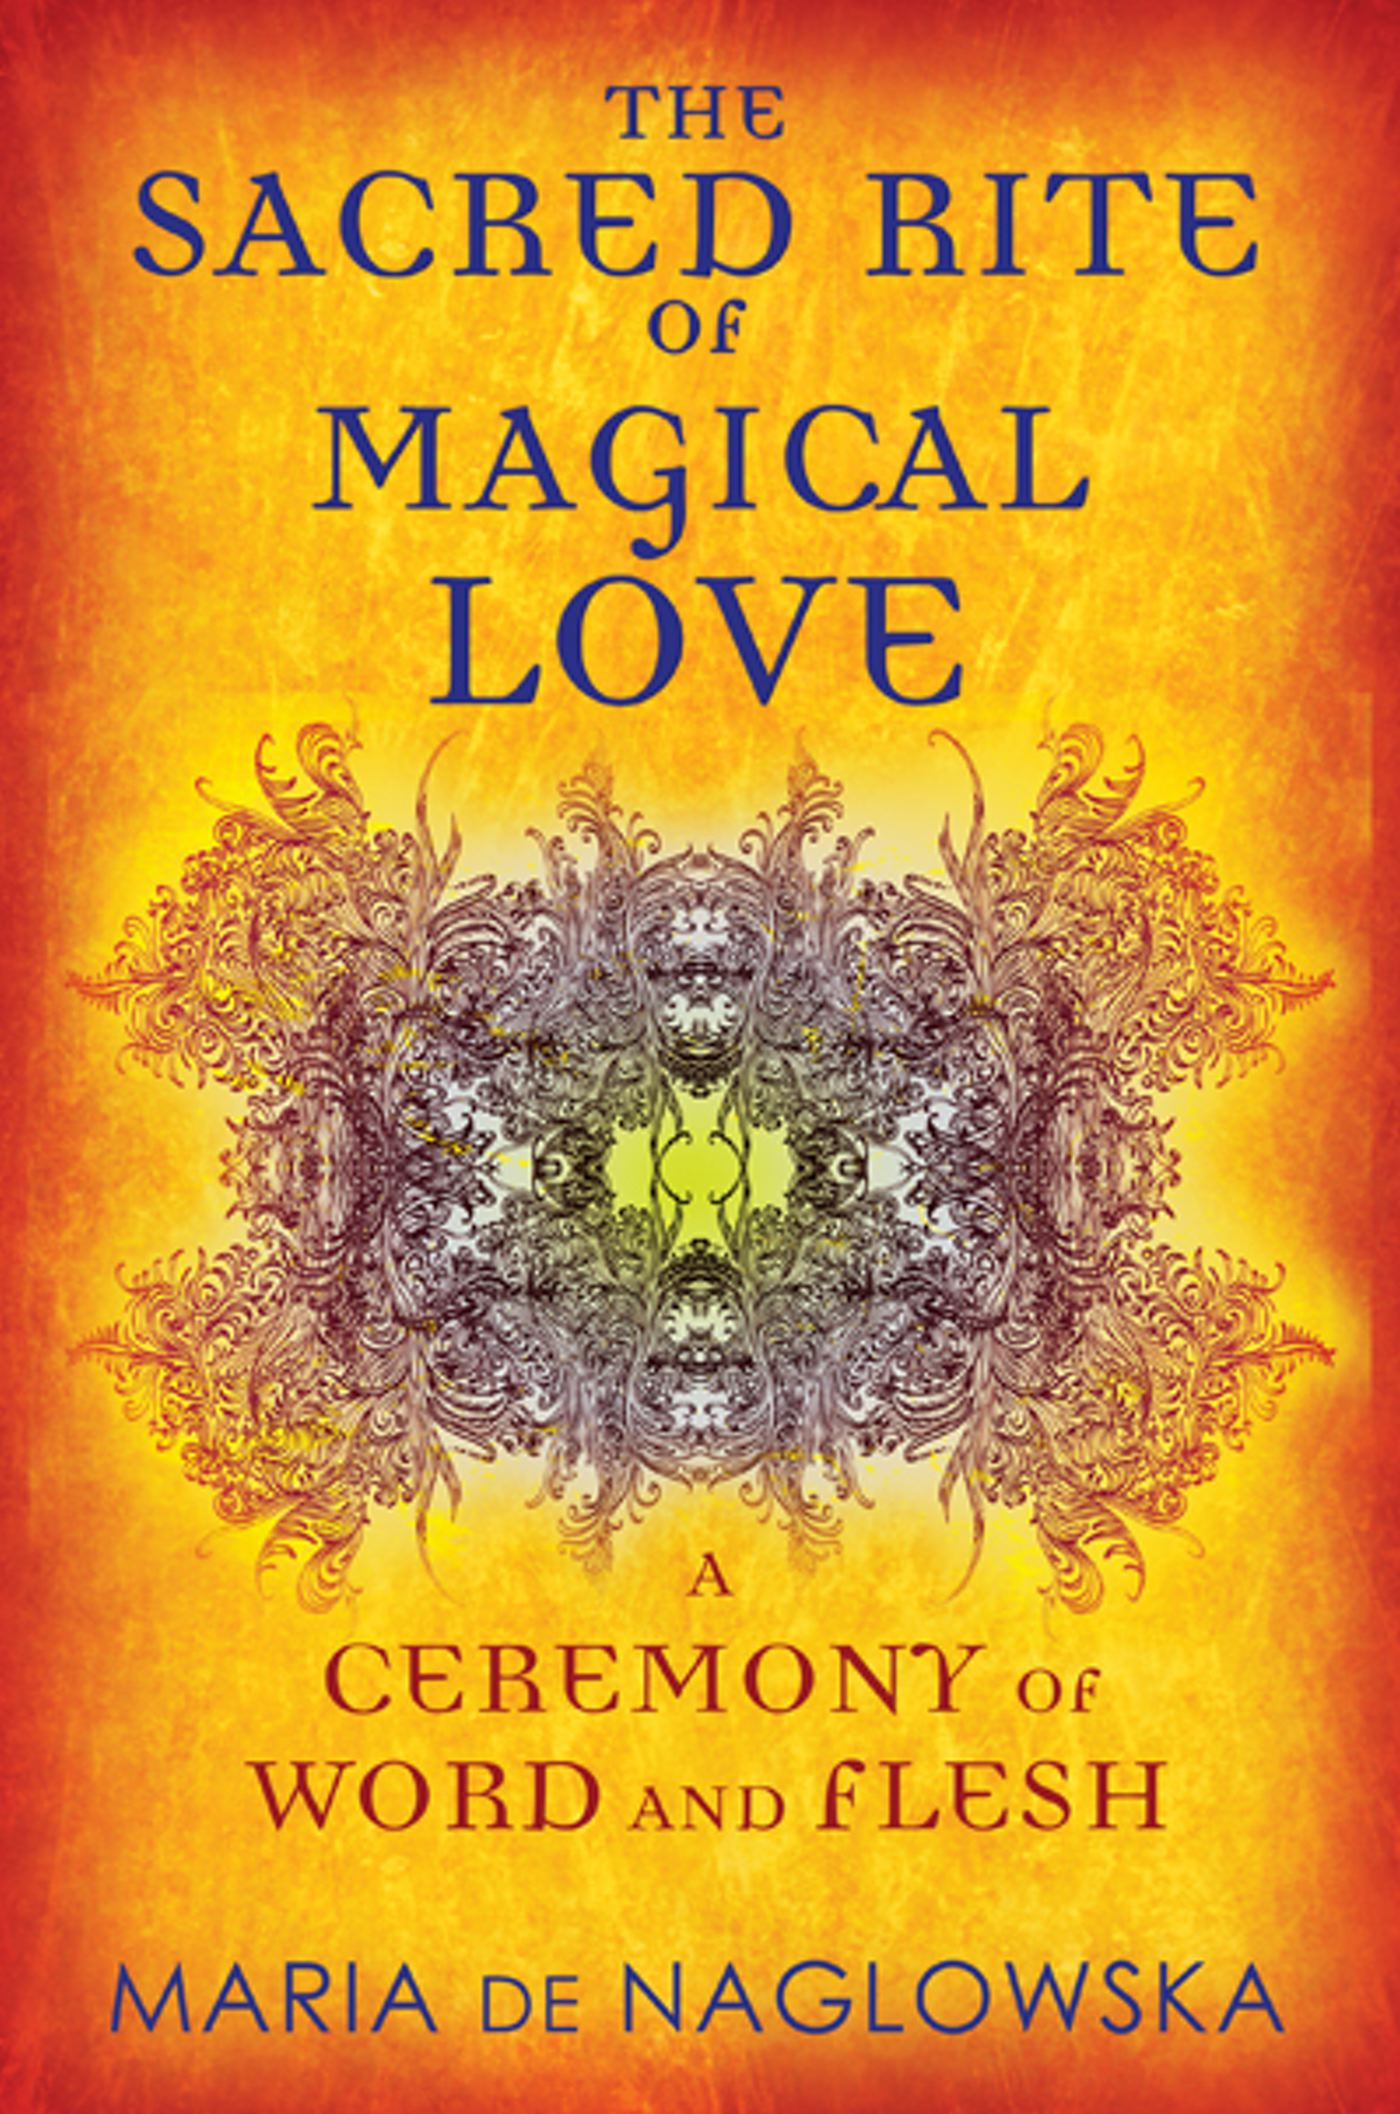 The sacred rite of magical love 9781594774171 hr